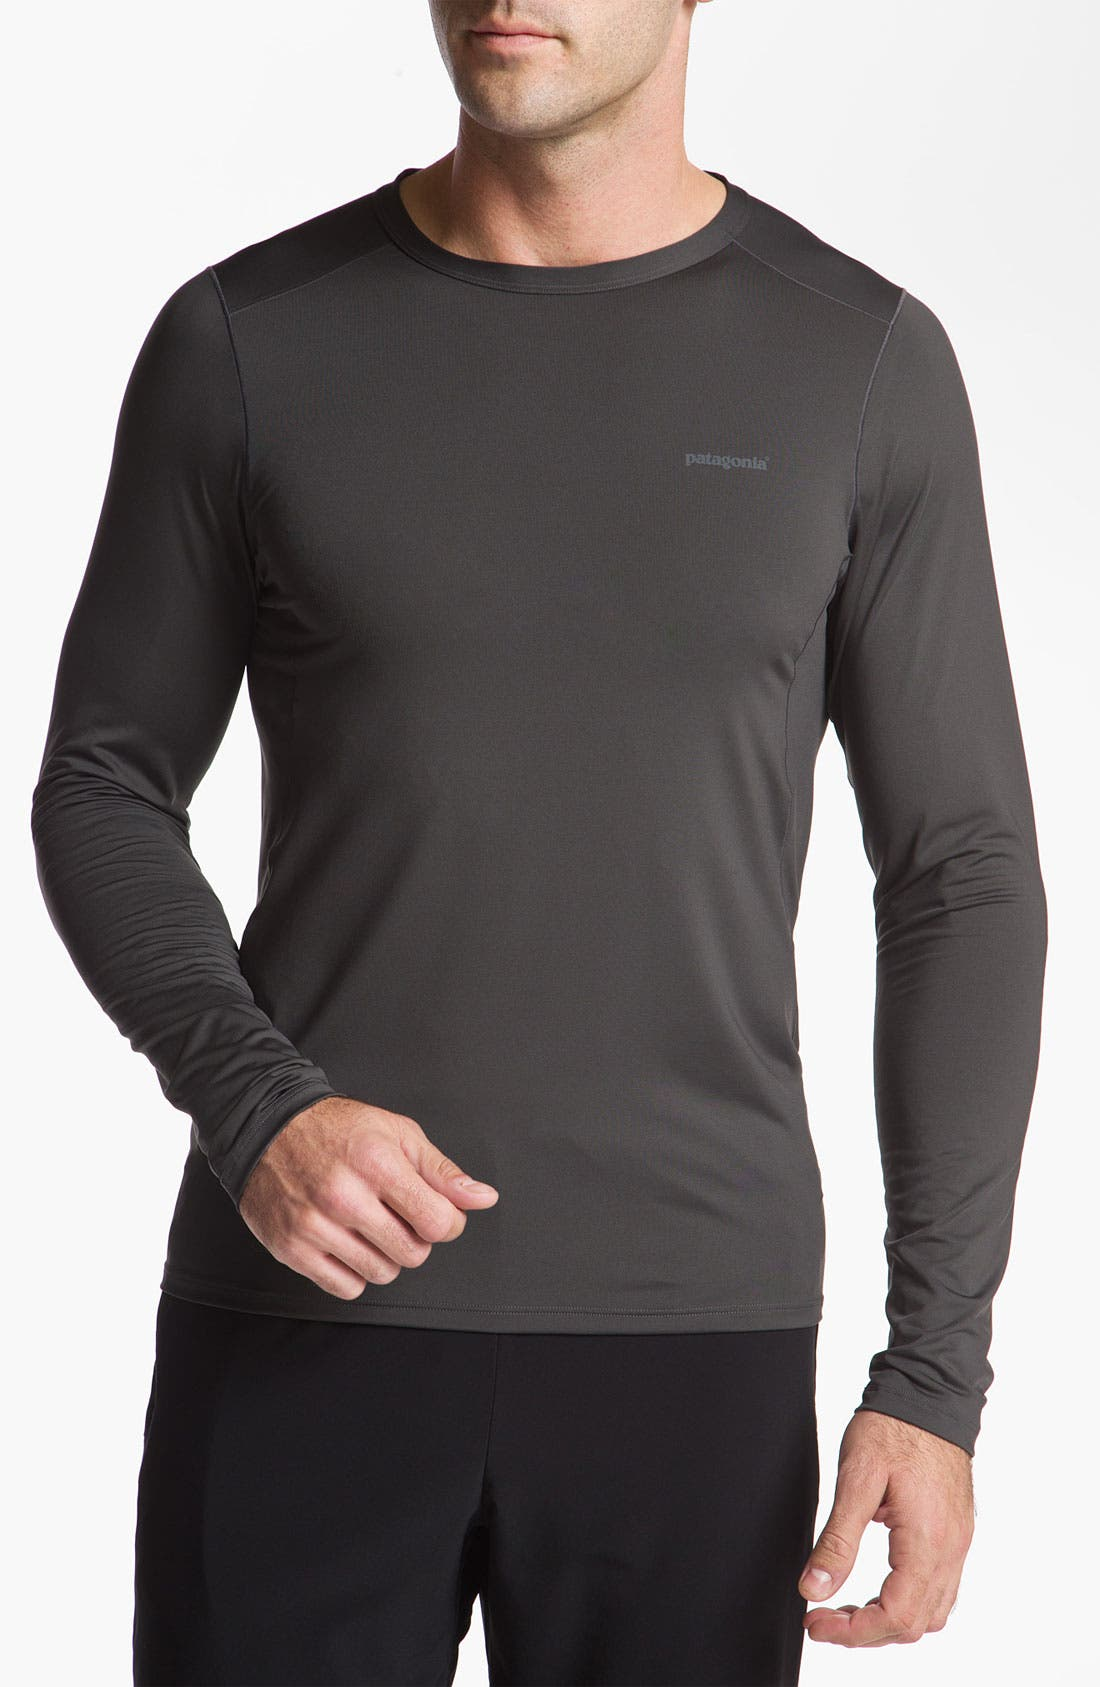 Alternate Image 1 Selected - Patagonia 'Capilene' Long Sleeve T-Shirt (Online Exclusive)